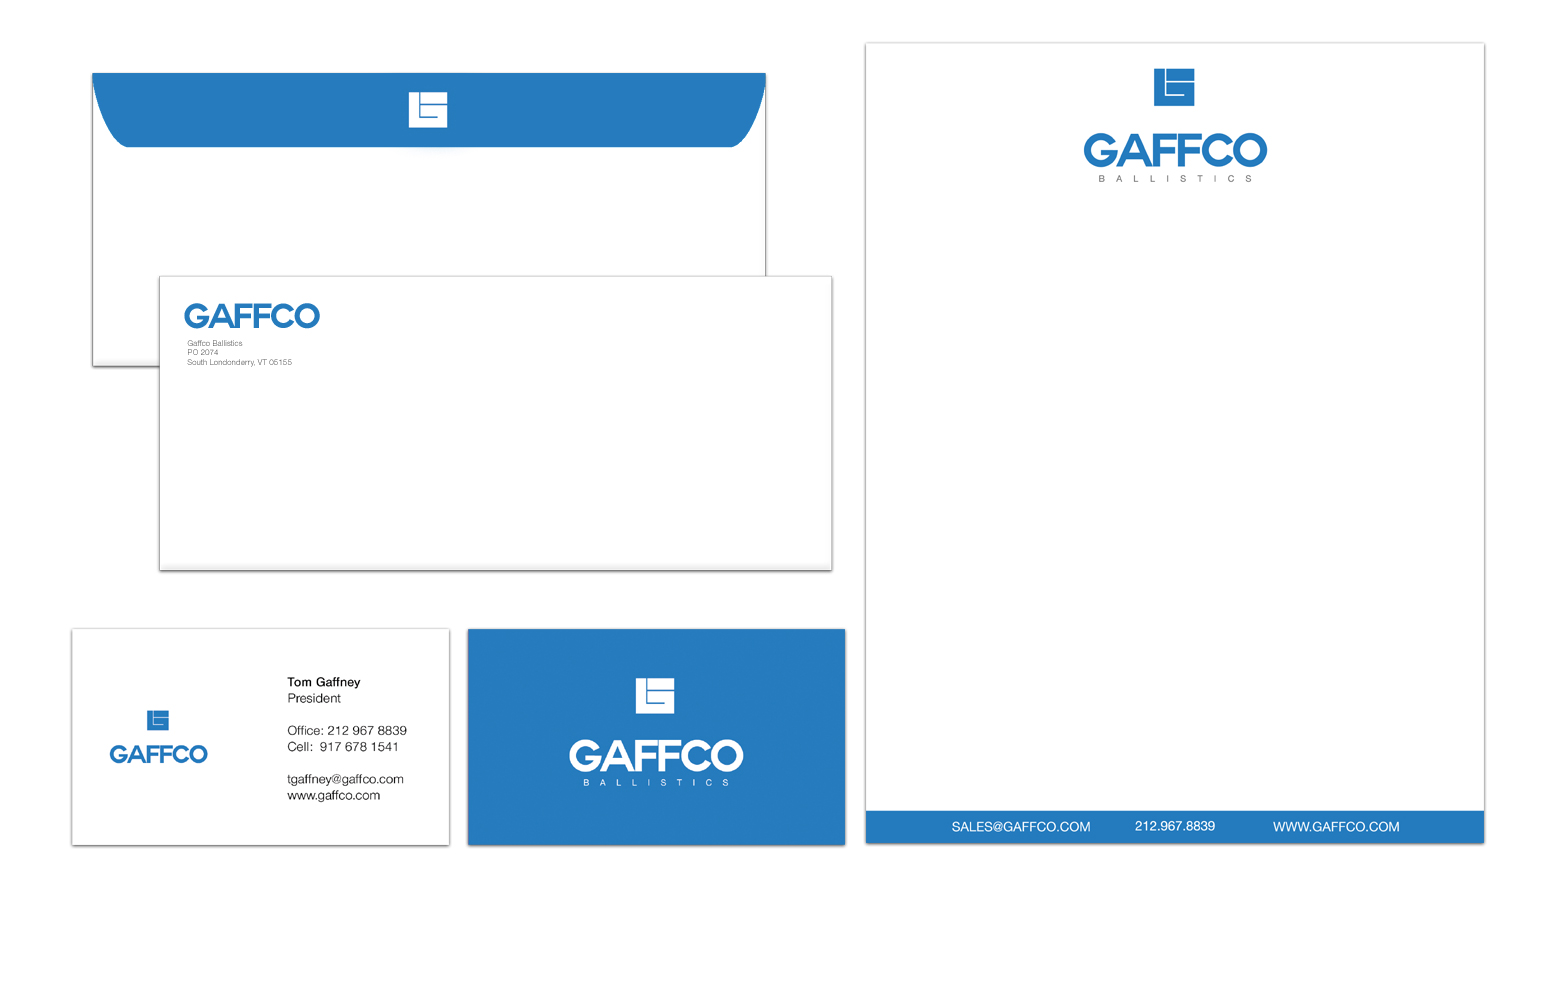 Gaffco Branding & Print Collateral